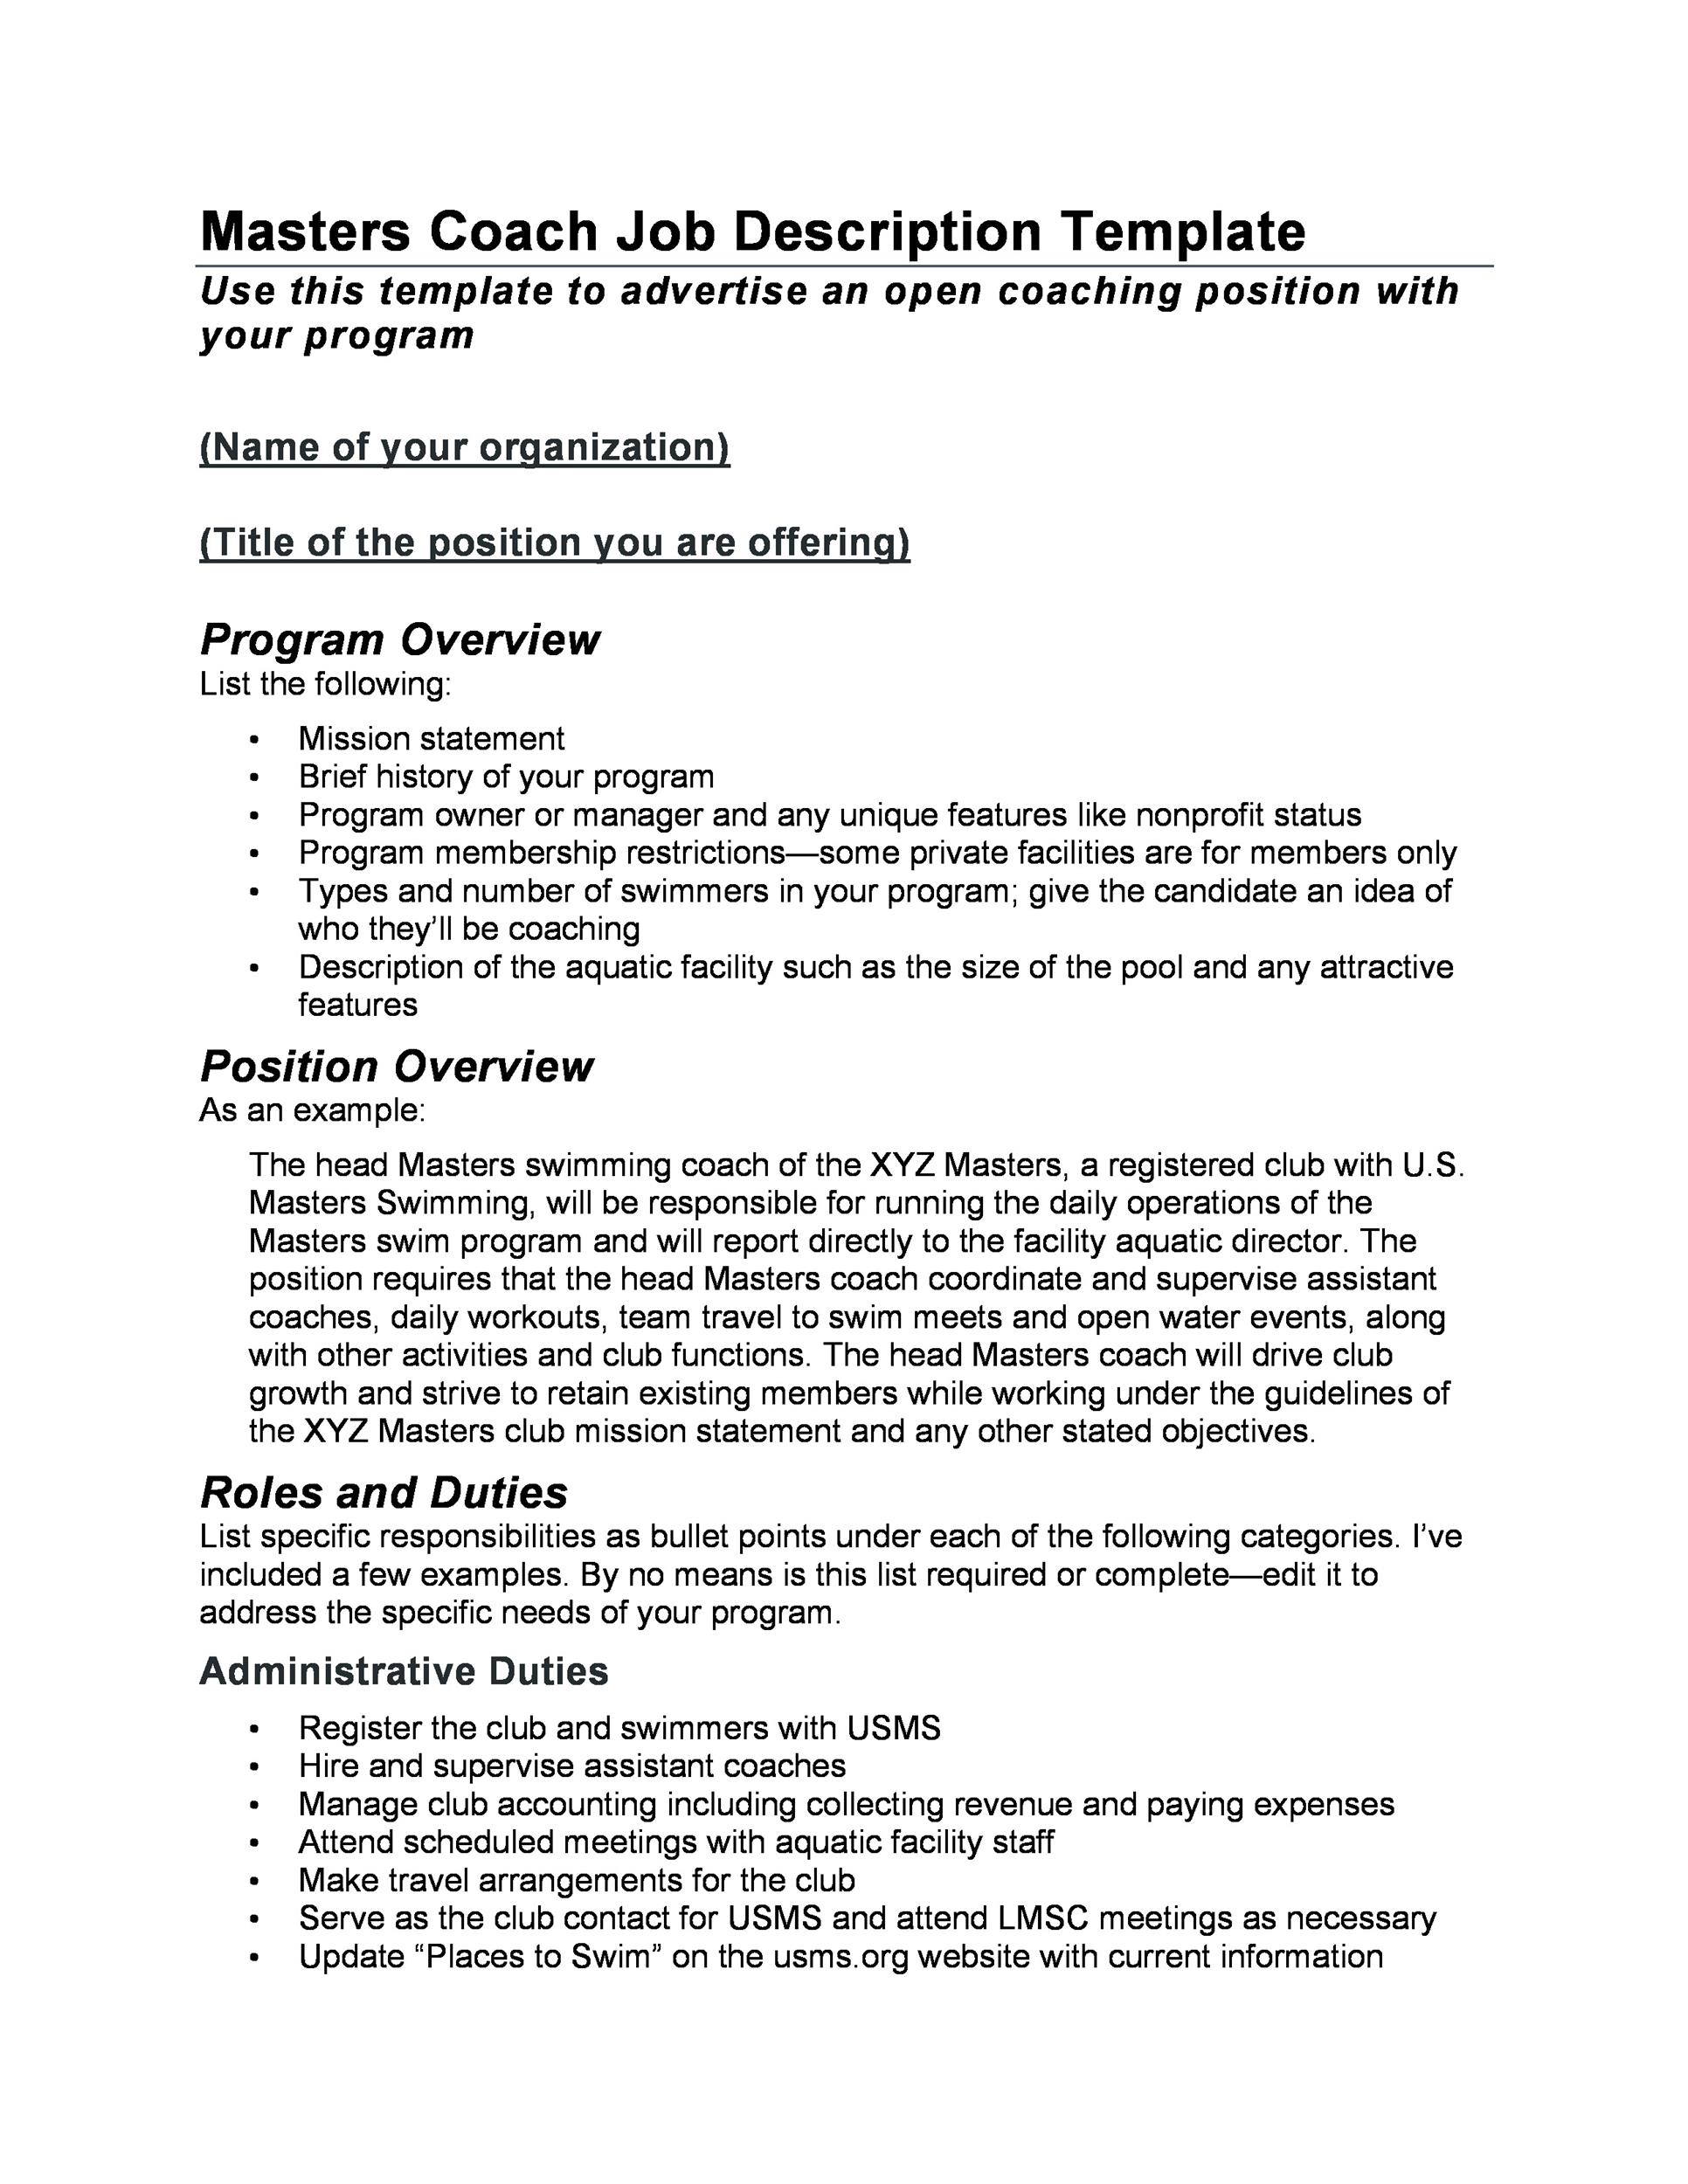 job description template 08 practice director job description - Practice Director Job Description